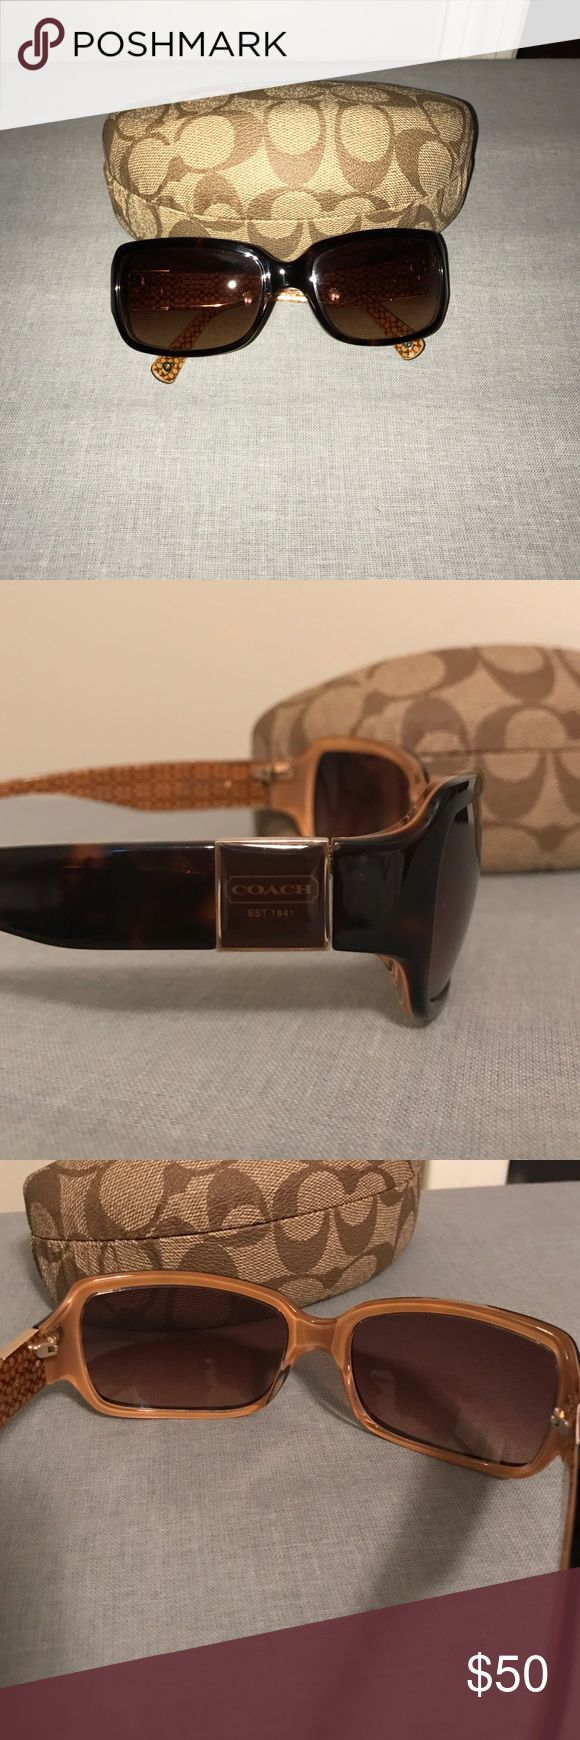 Coach sunglasses Like new condition coach sunglasses with coach case and coach cloth. Tortoise color Coach Accessories Sunglasses